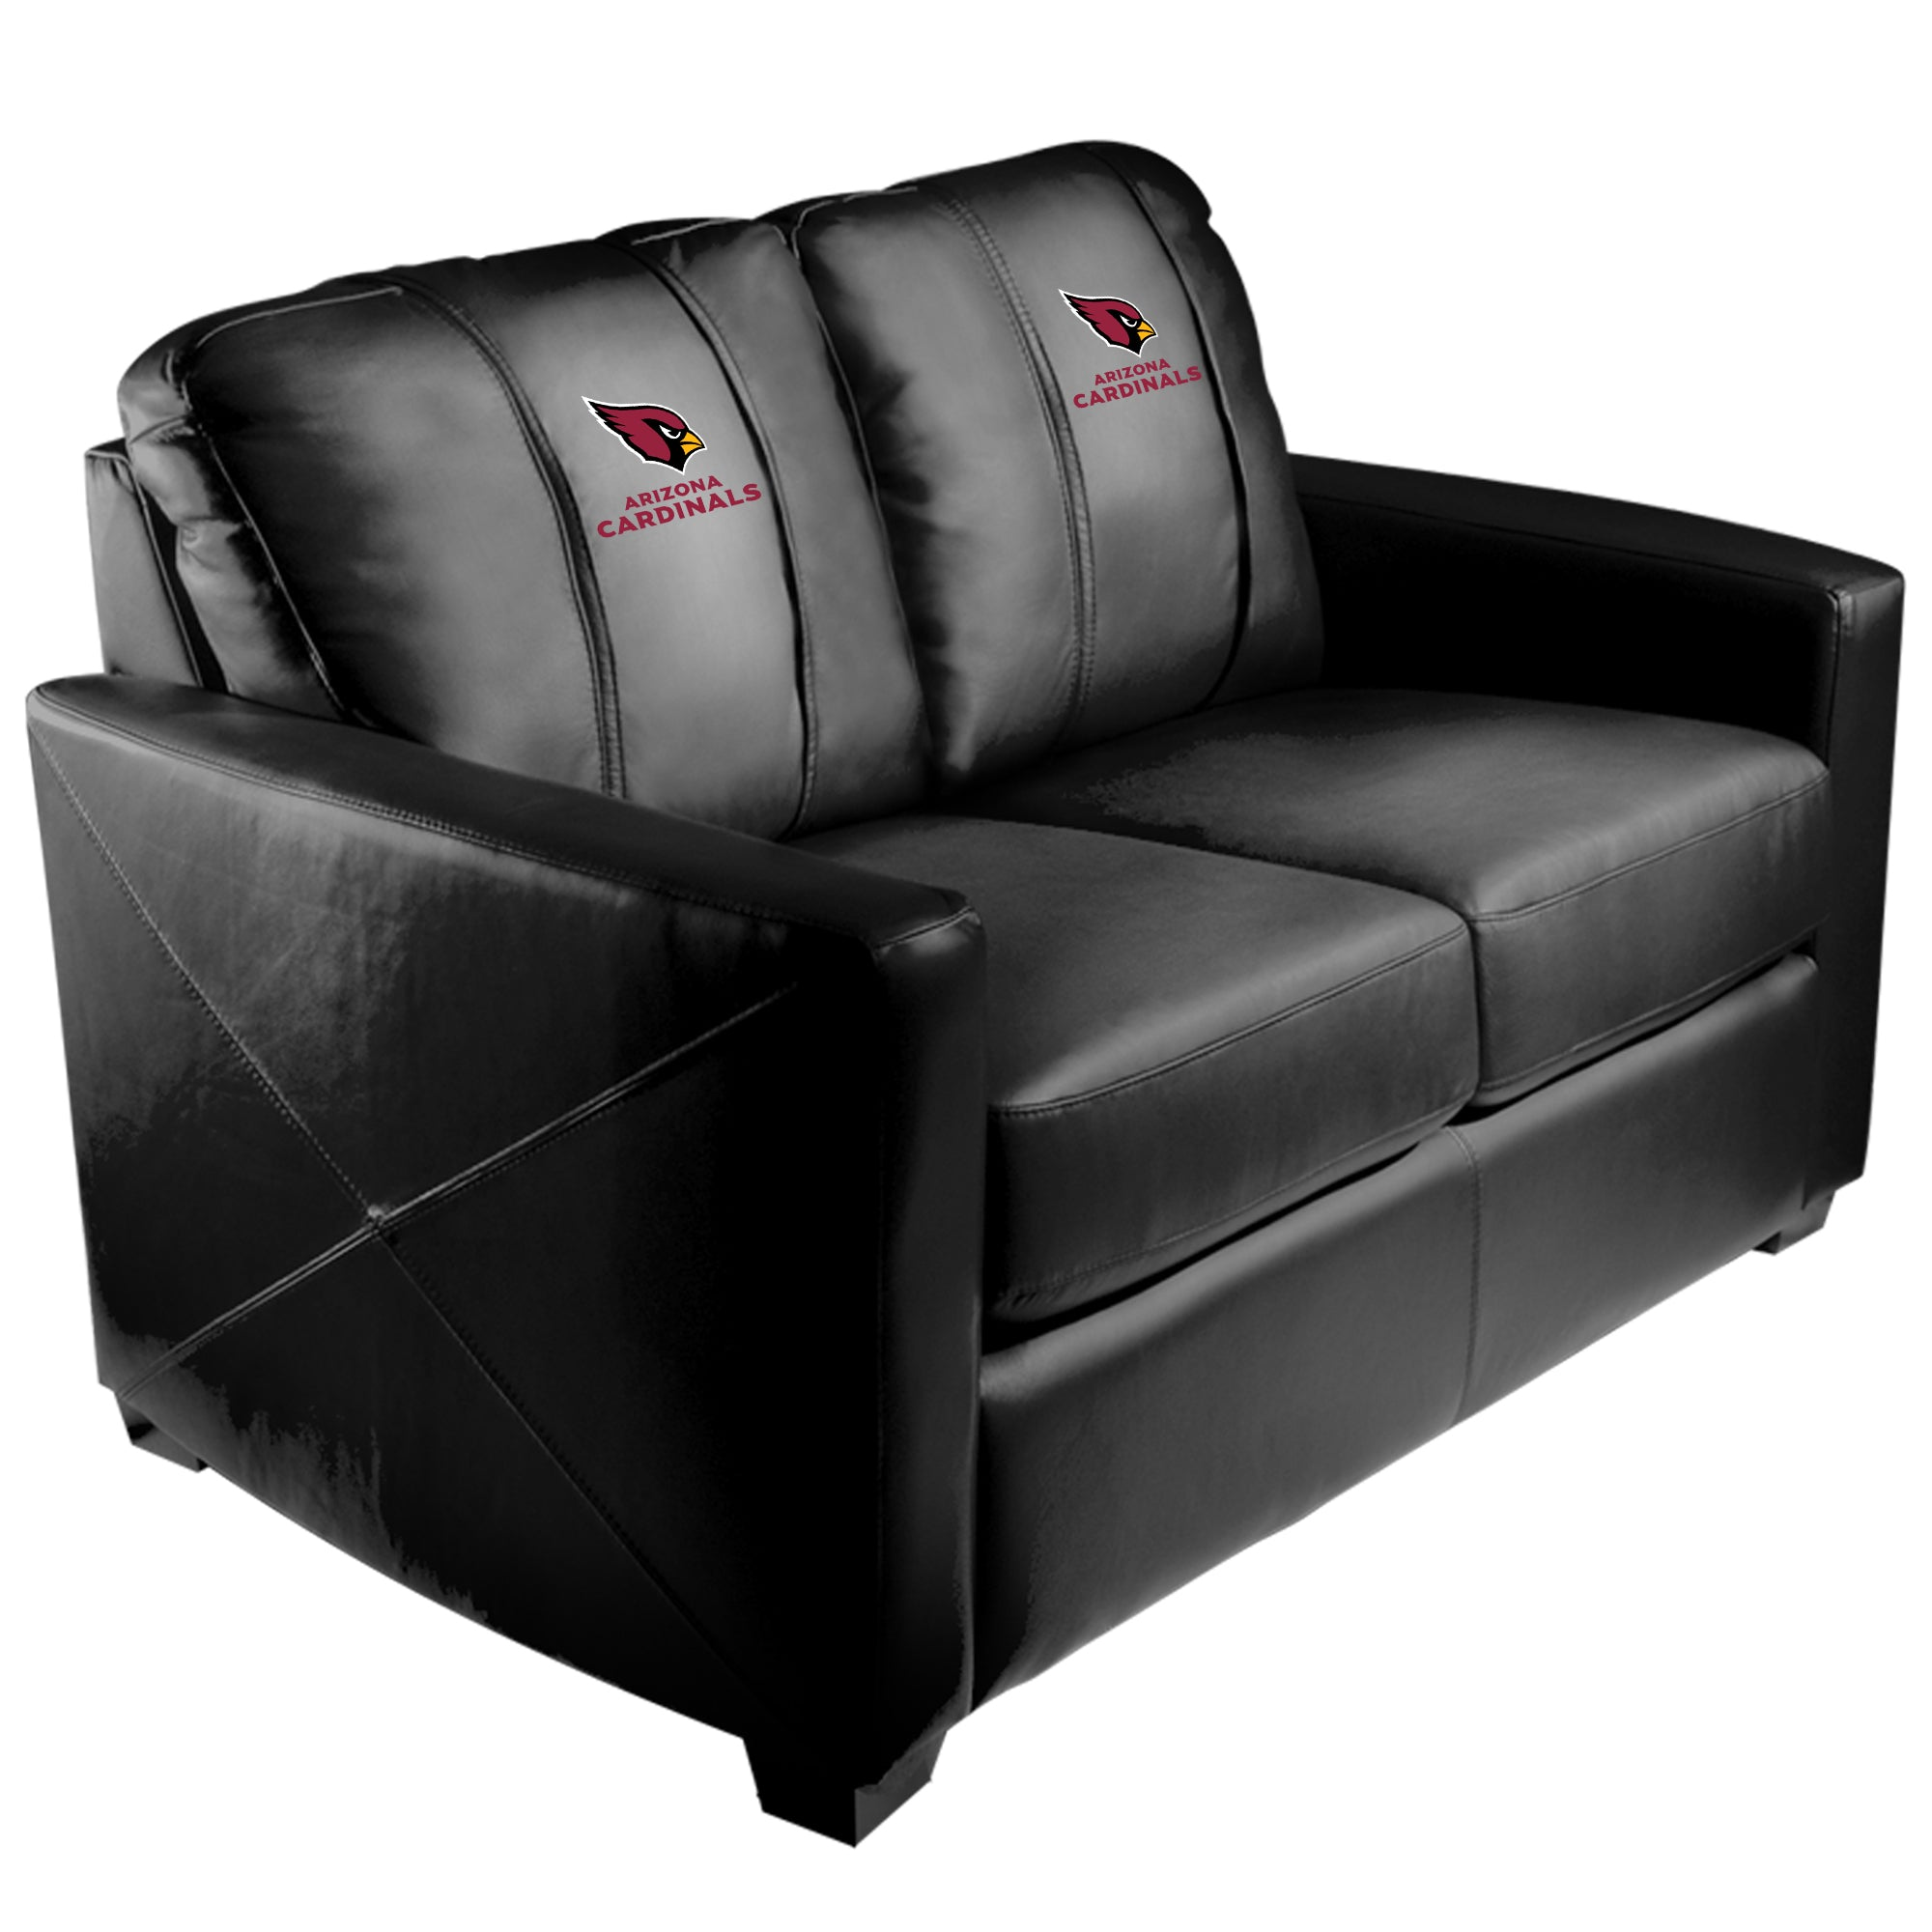 Silver Loveseat with Arizona Cardinals Secondary Logo